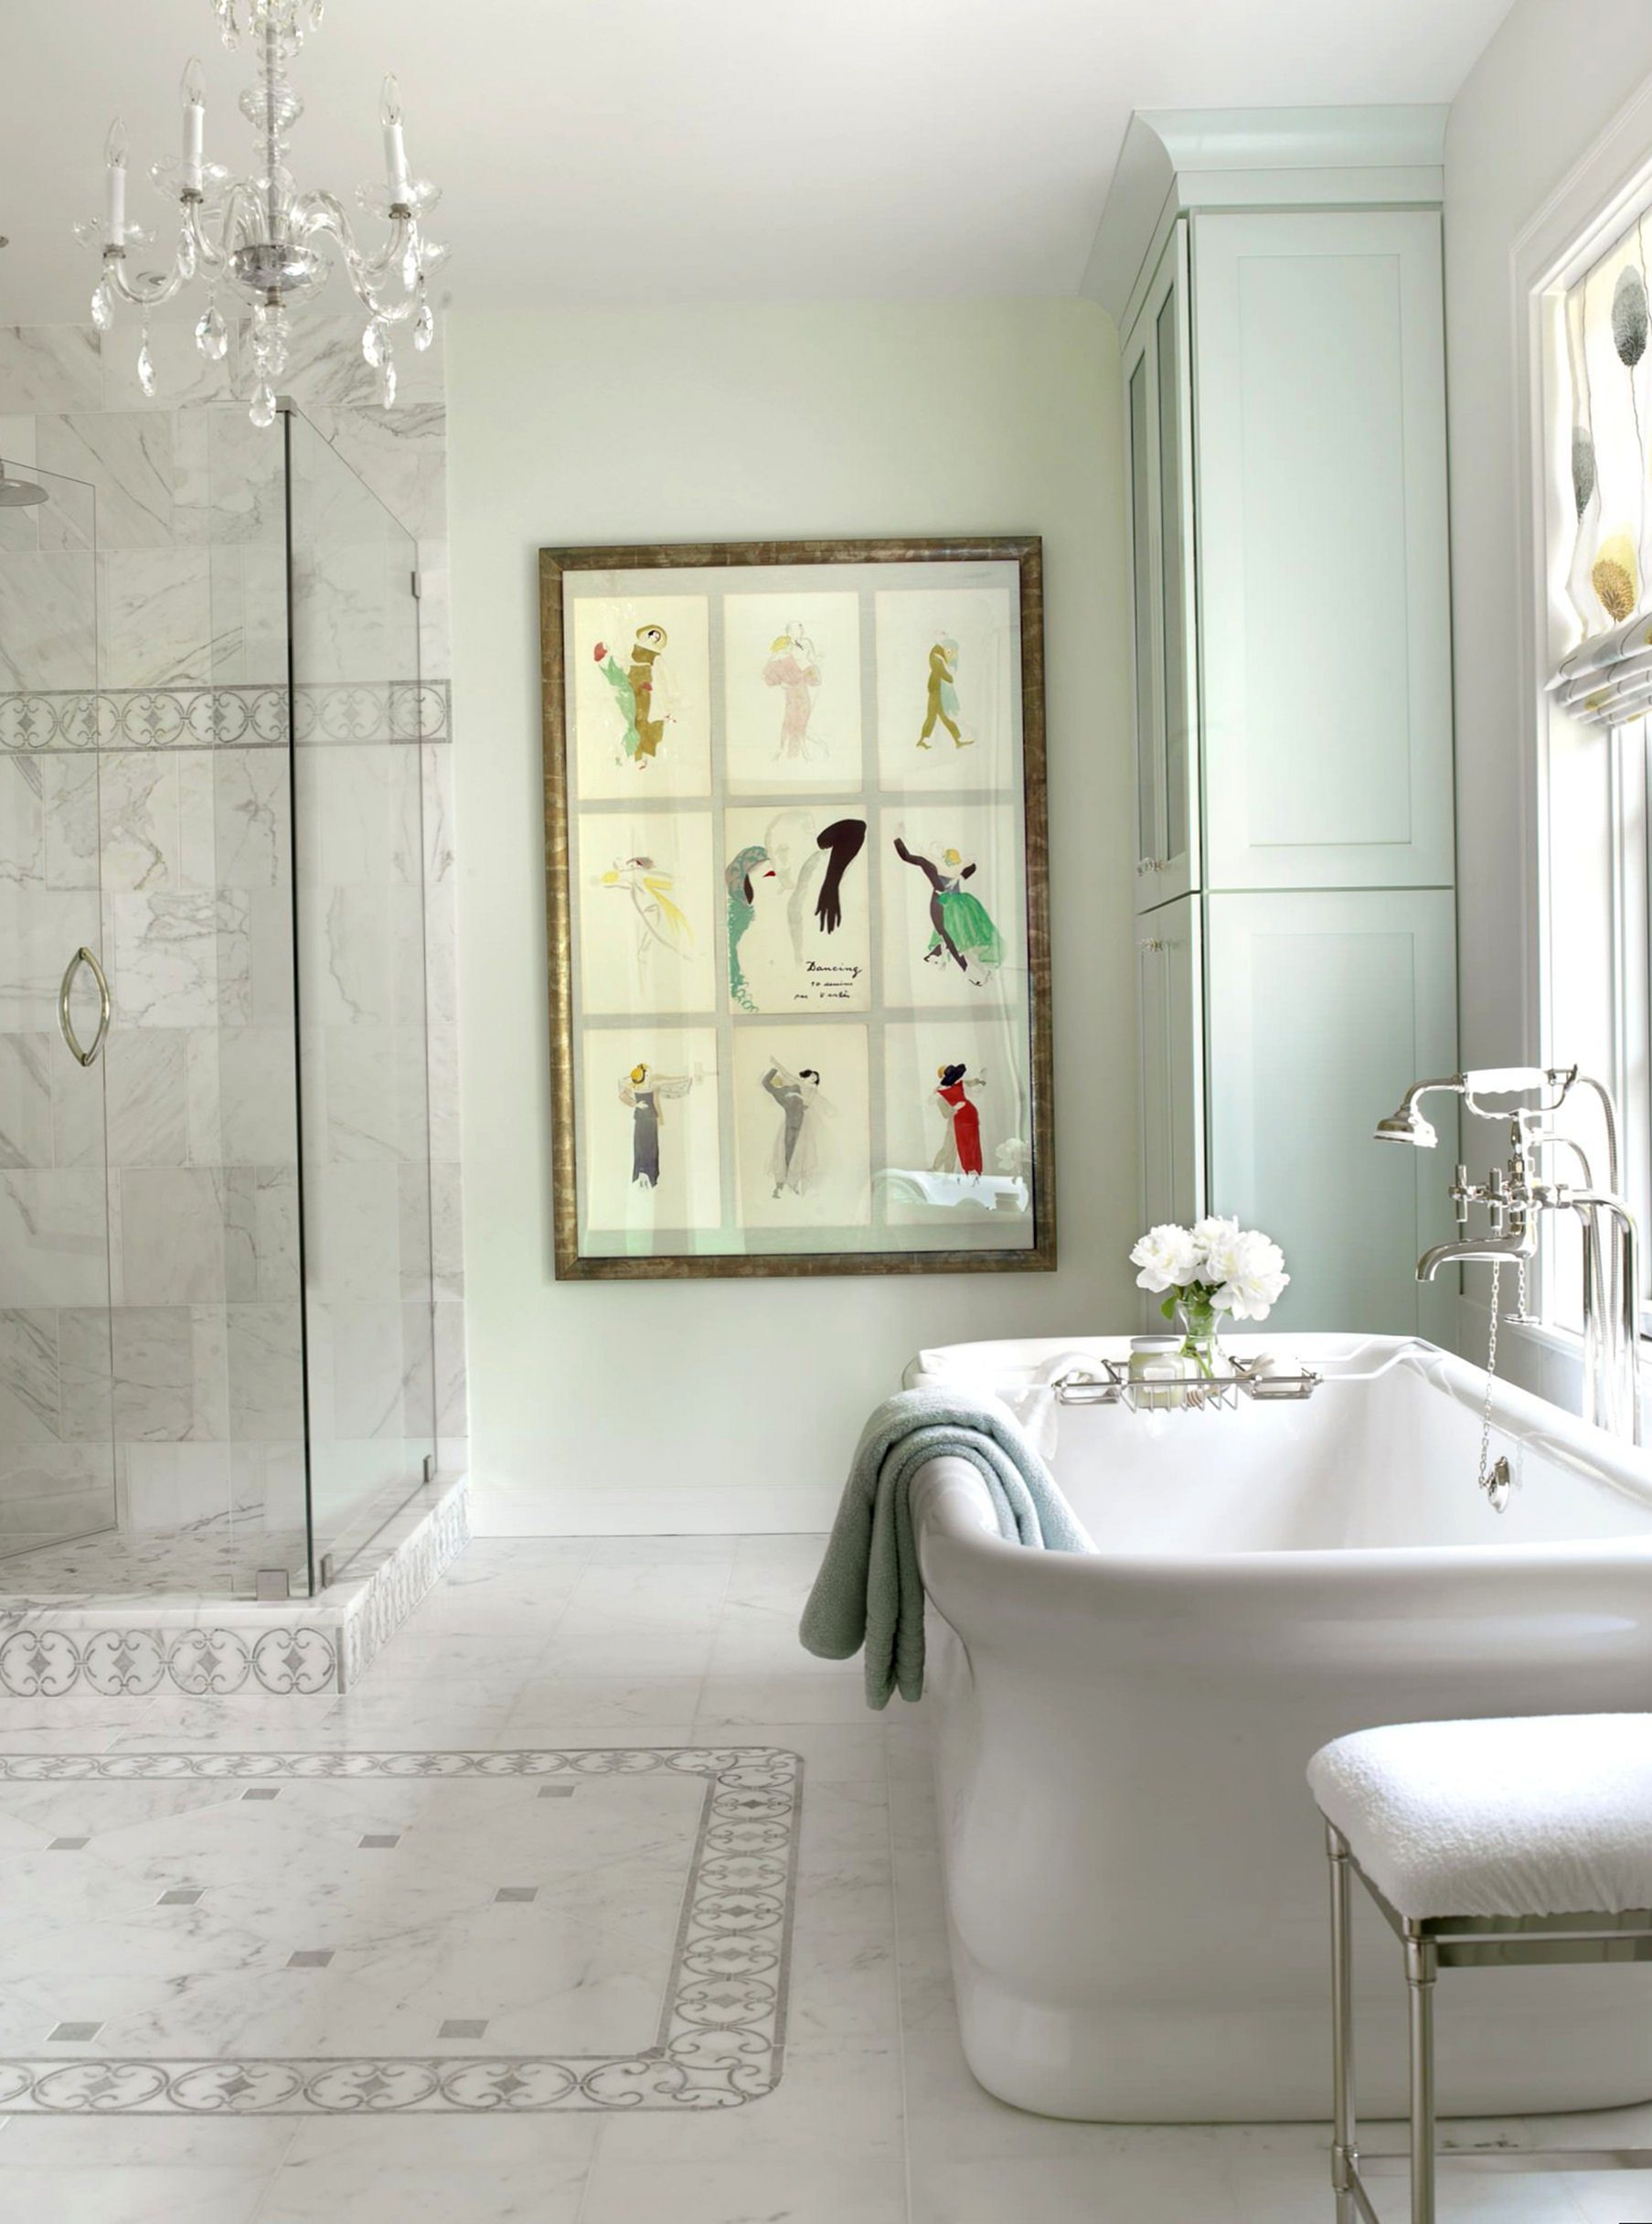 4 Awesome French Country Bathroom Design Ideas  Classic bathroom